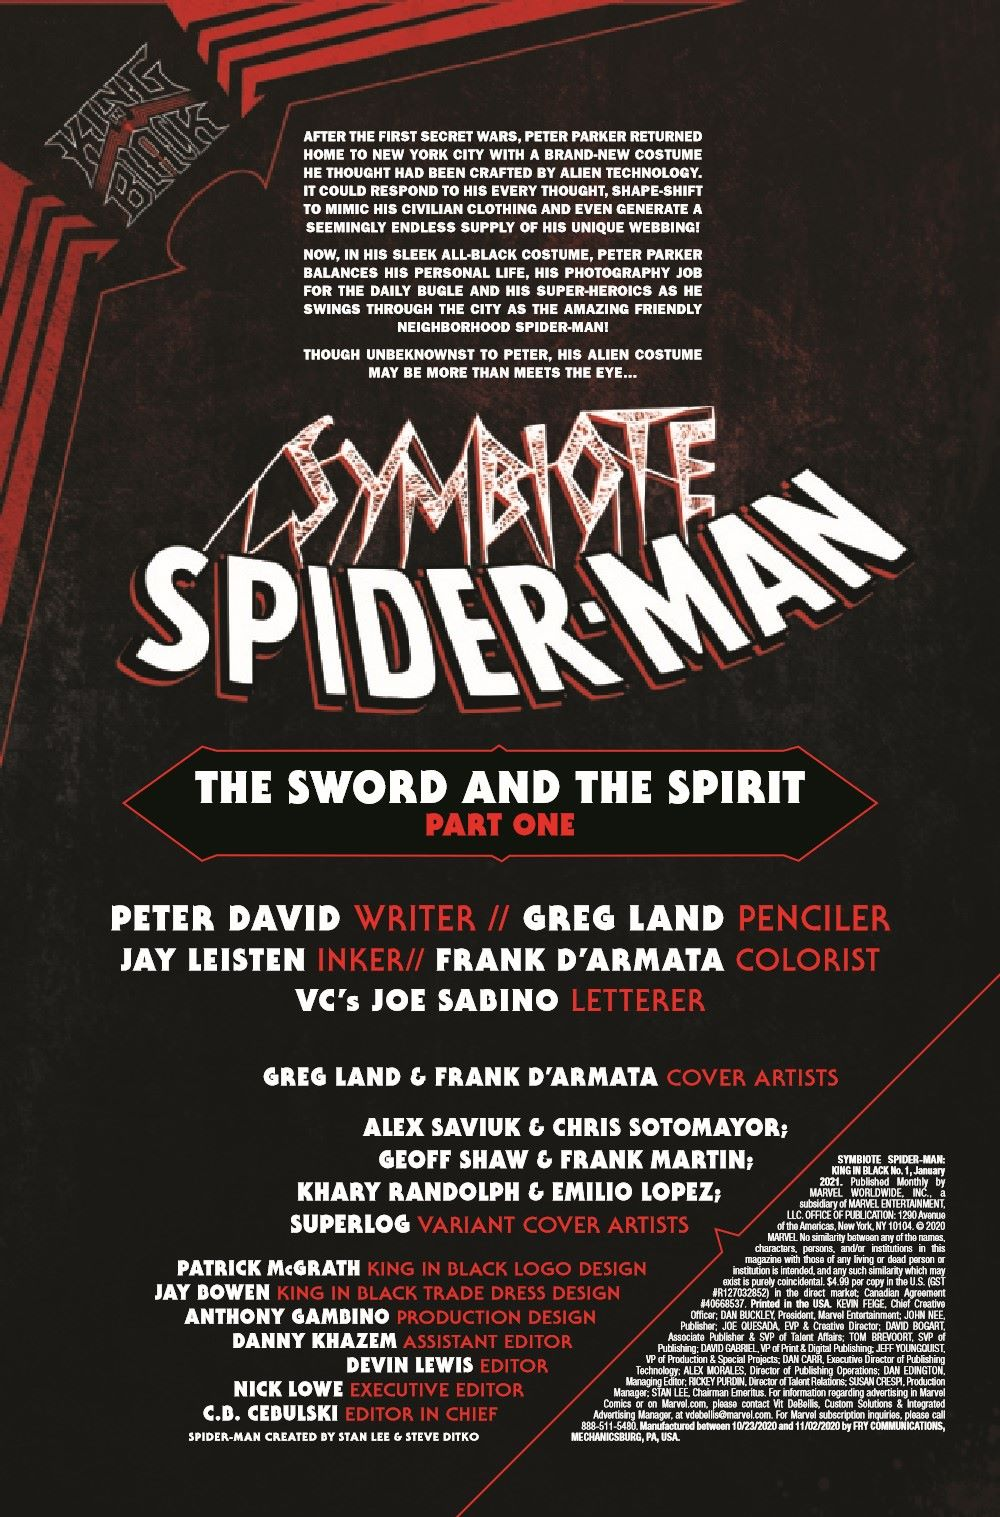 SYMBIOTESMKIB2020001_Preview-2 ComicList Previews: SYMBIOTE SPIDER-MAN KING IN BLACK #1 (OF 5)